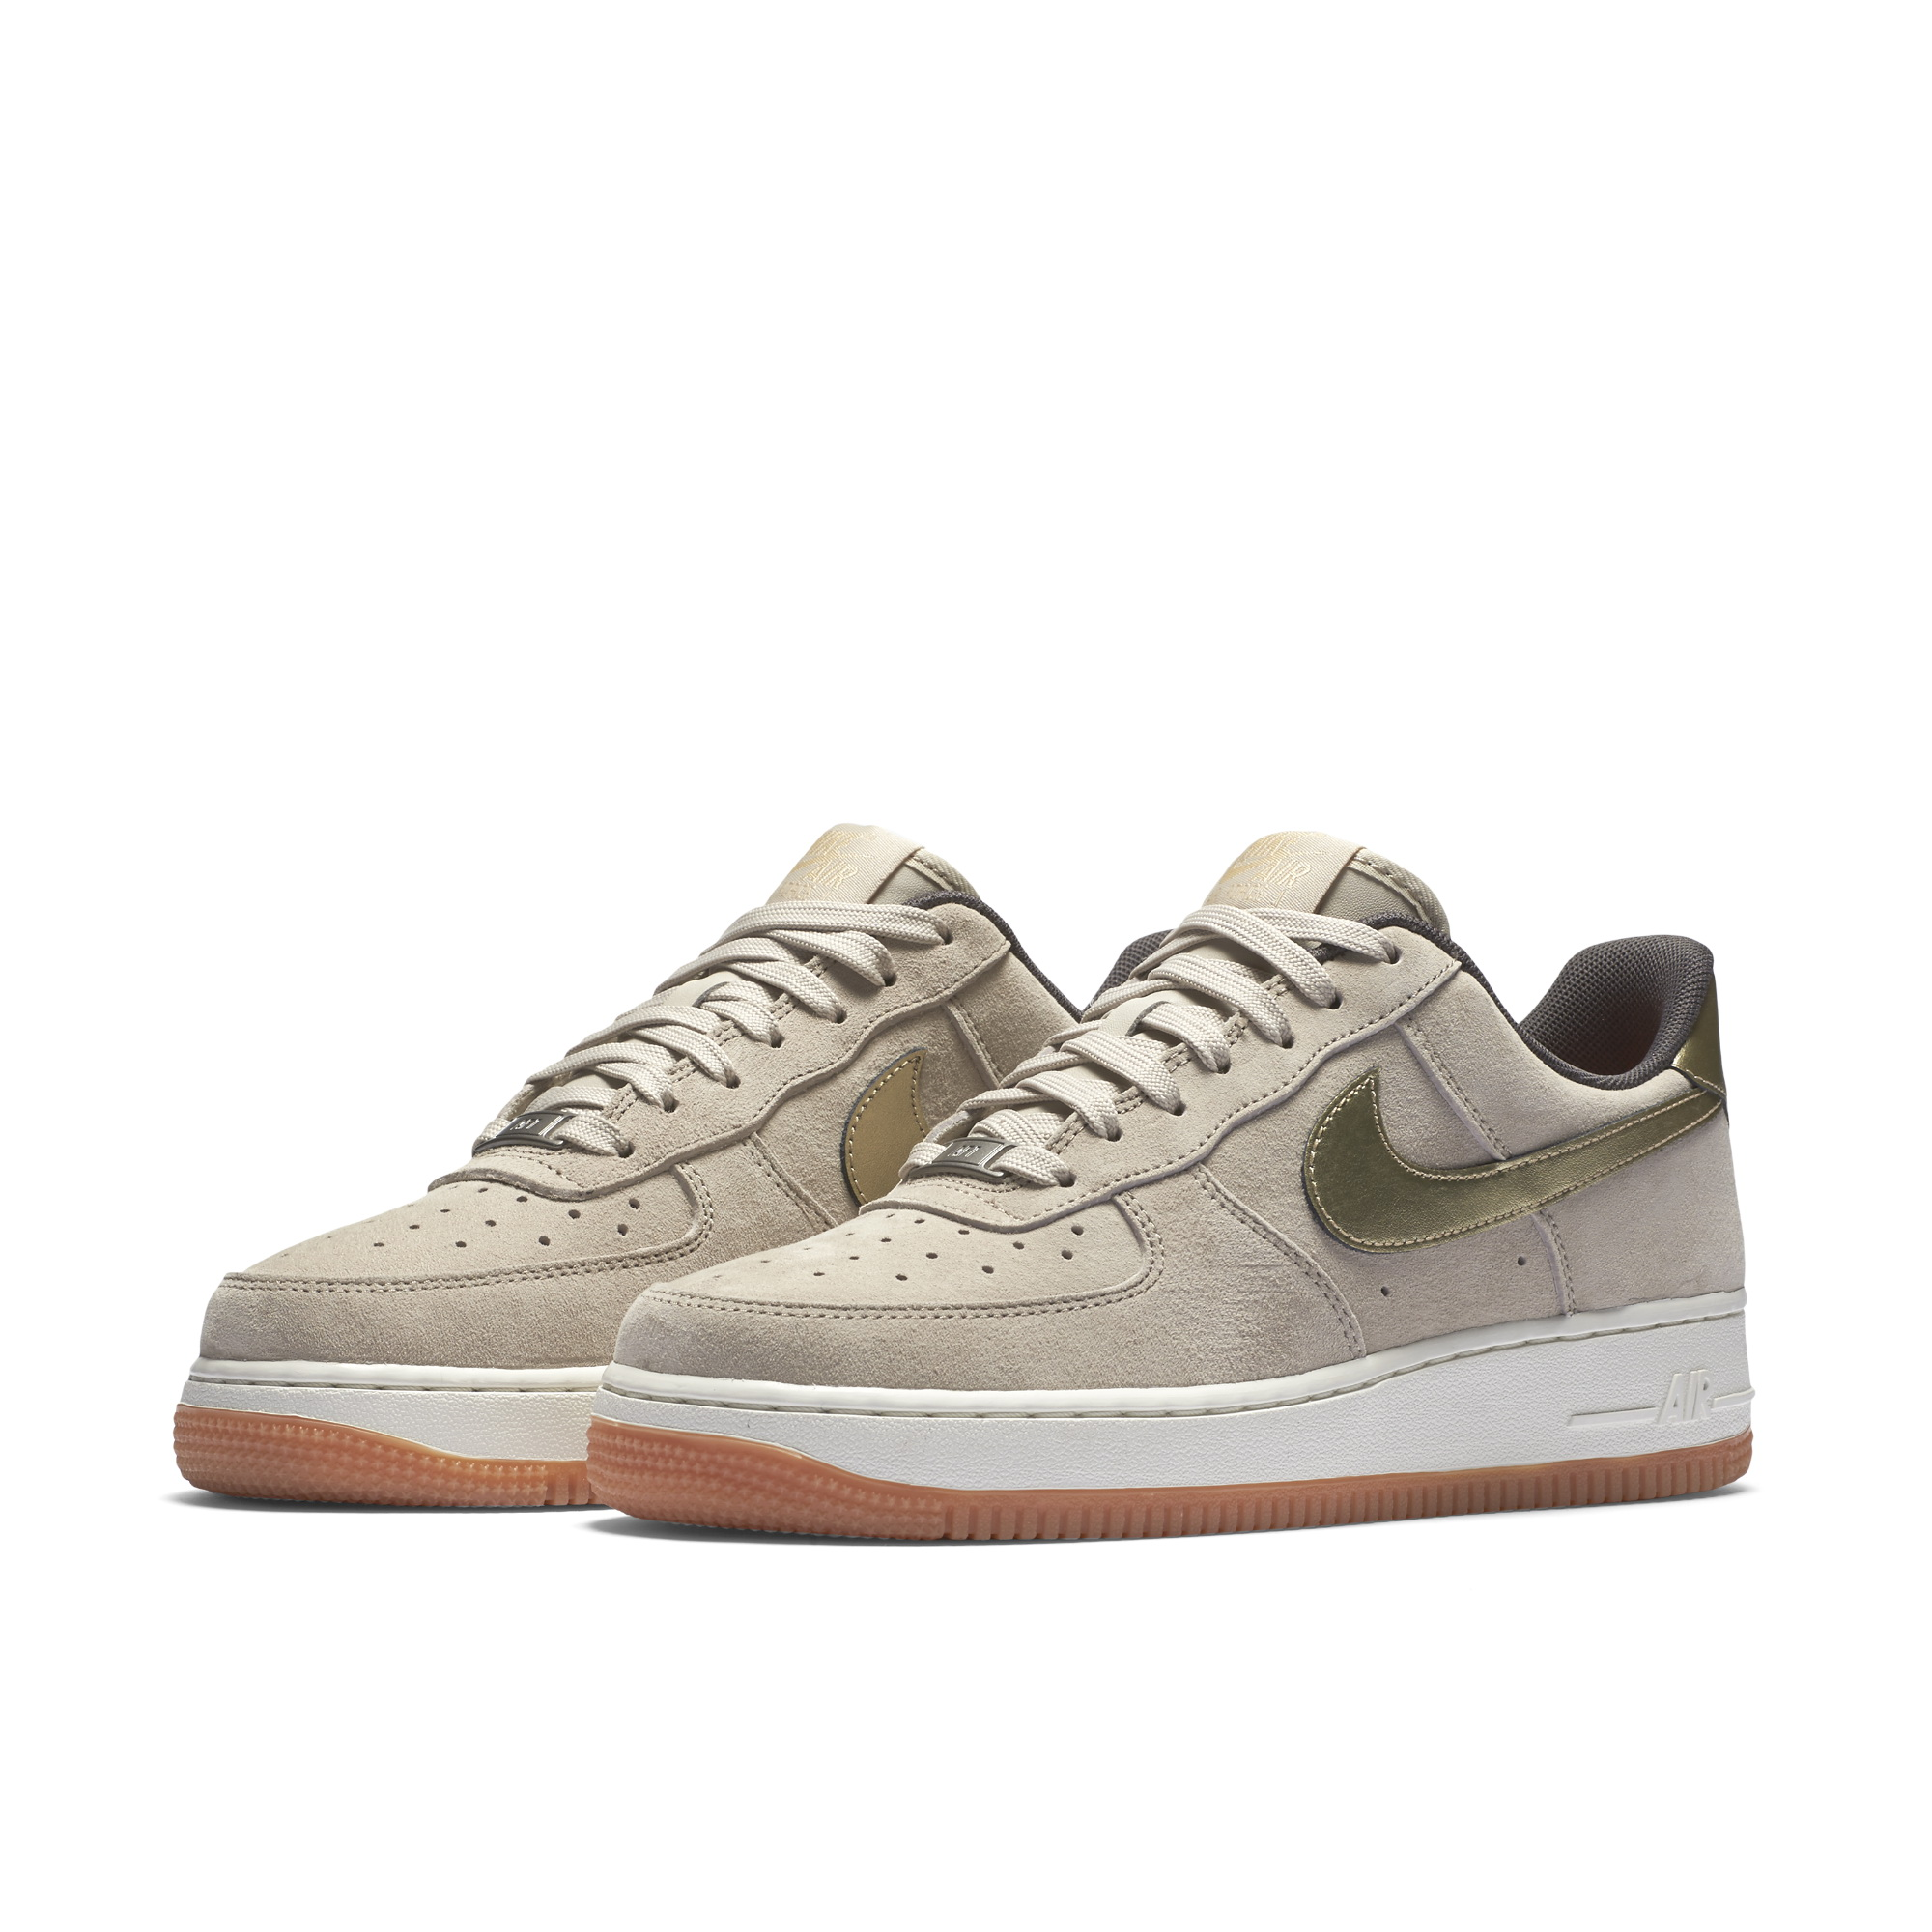 Nike W AIR FORCE 1 '07 PRM SUEDE WOMENS SNEAKERS 818595-200